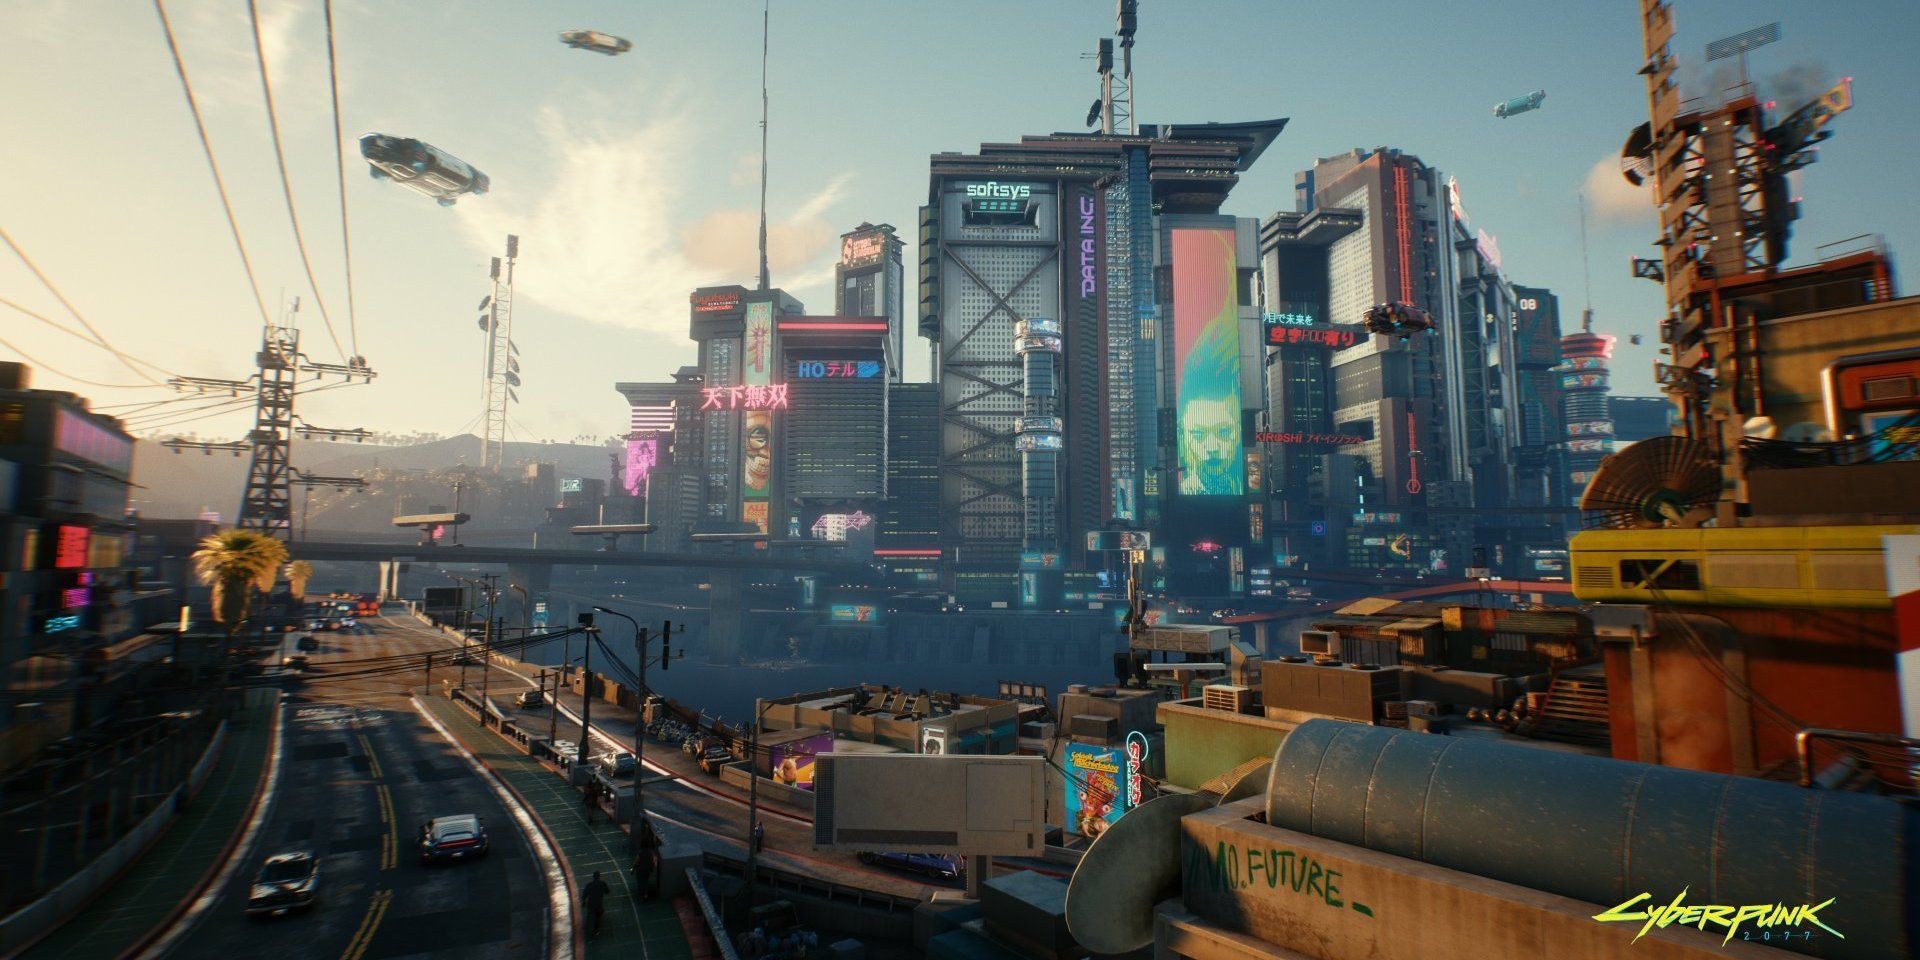 Cyberpunk 2077 developer CD Project Red refuses to leave the game